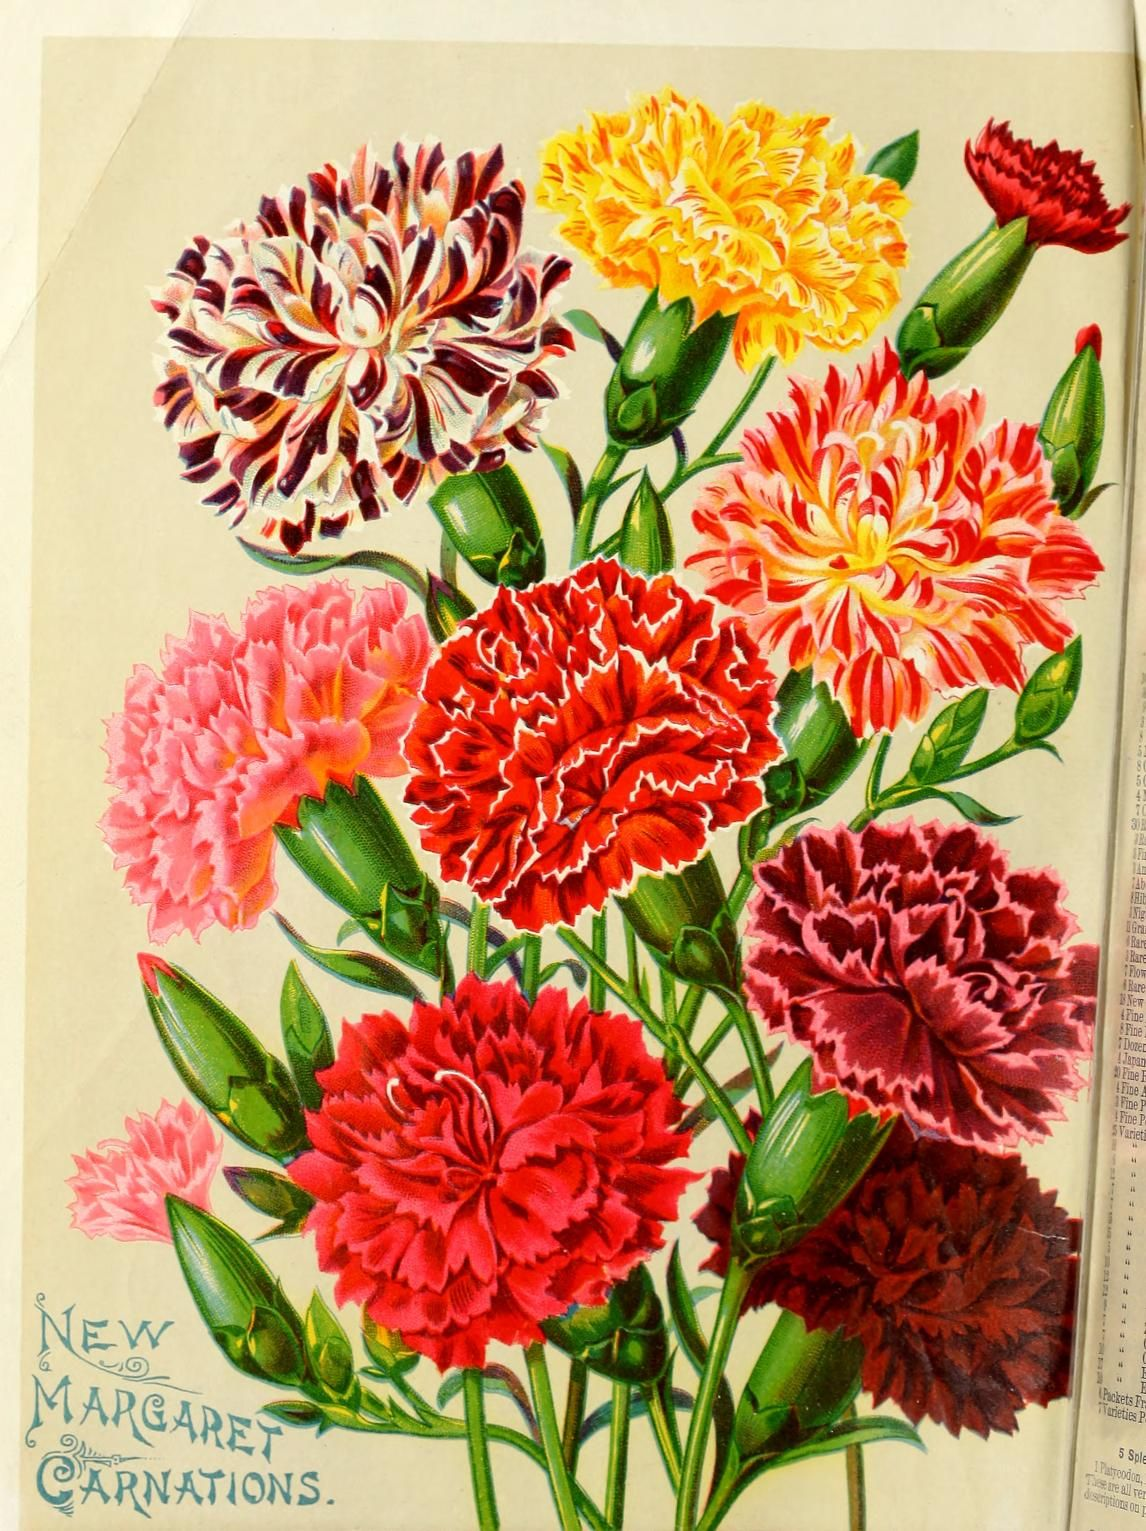 New rare and beautiful flowers vintage seed packets catalogs new rare and beautiful flowers izmirmasajfo